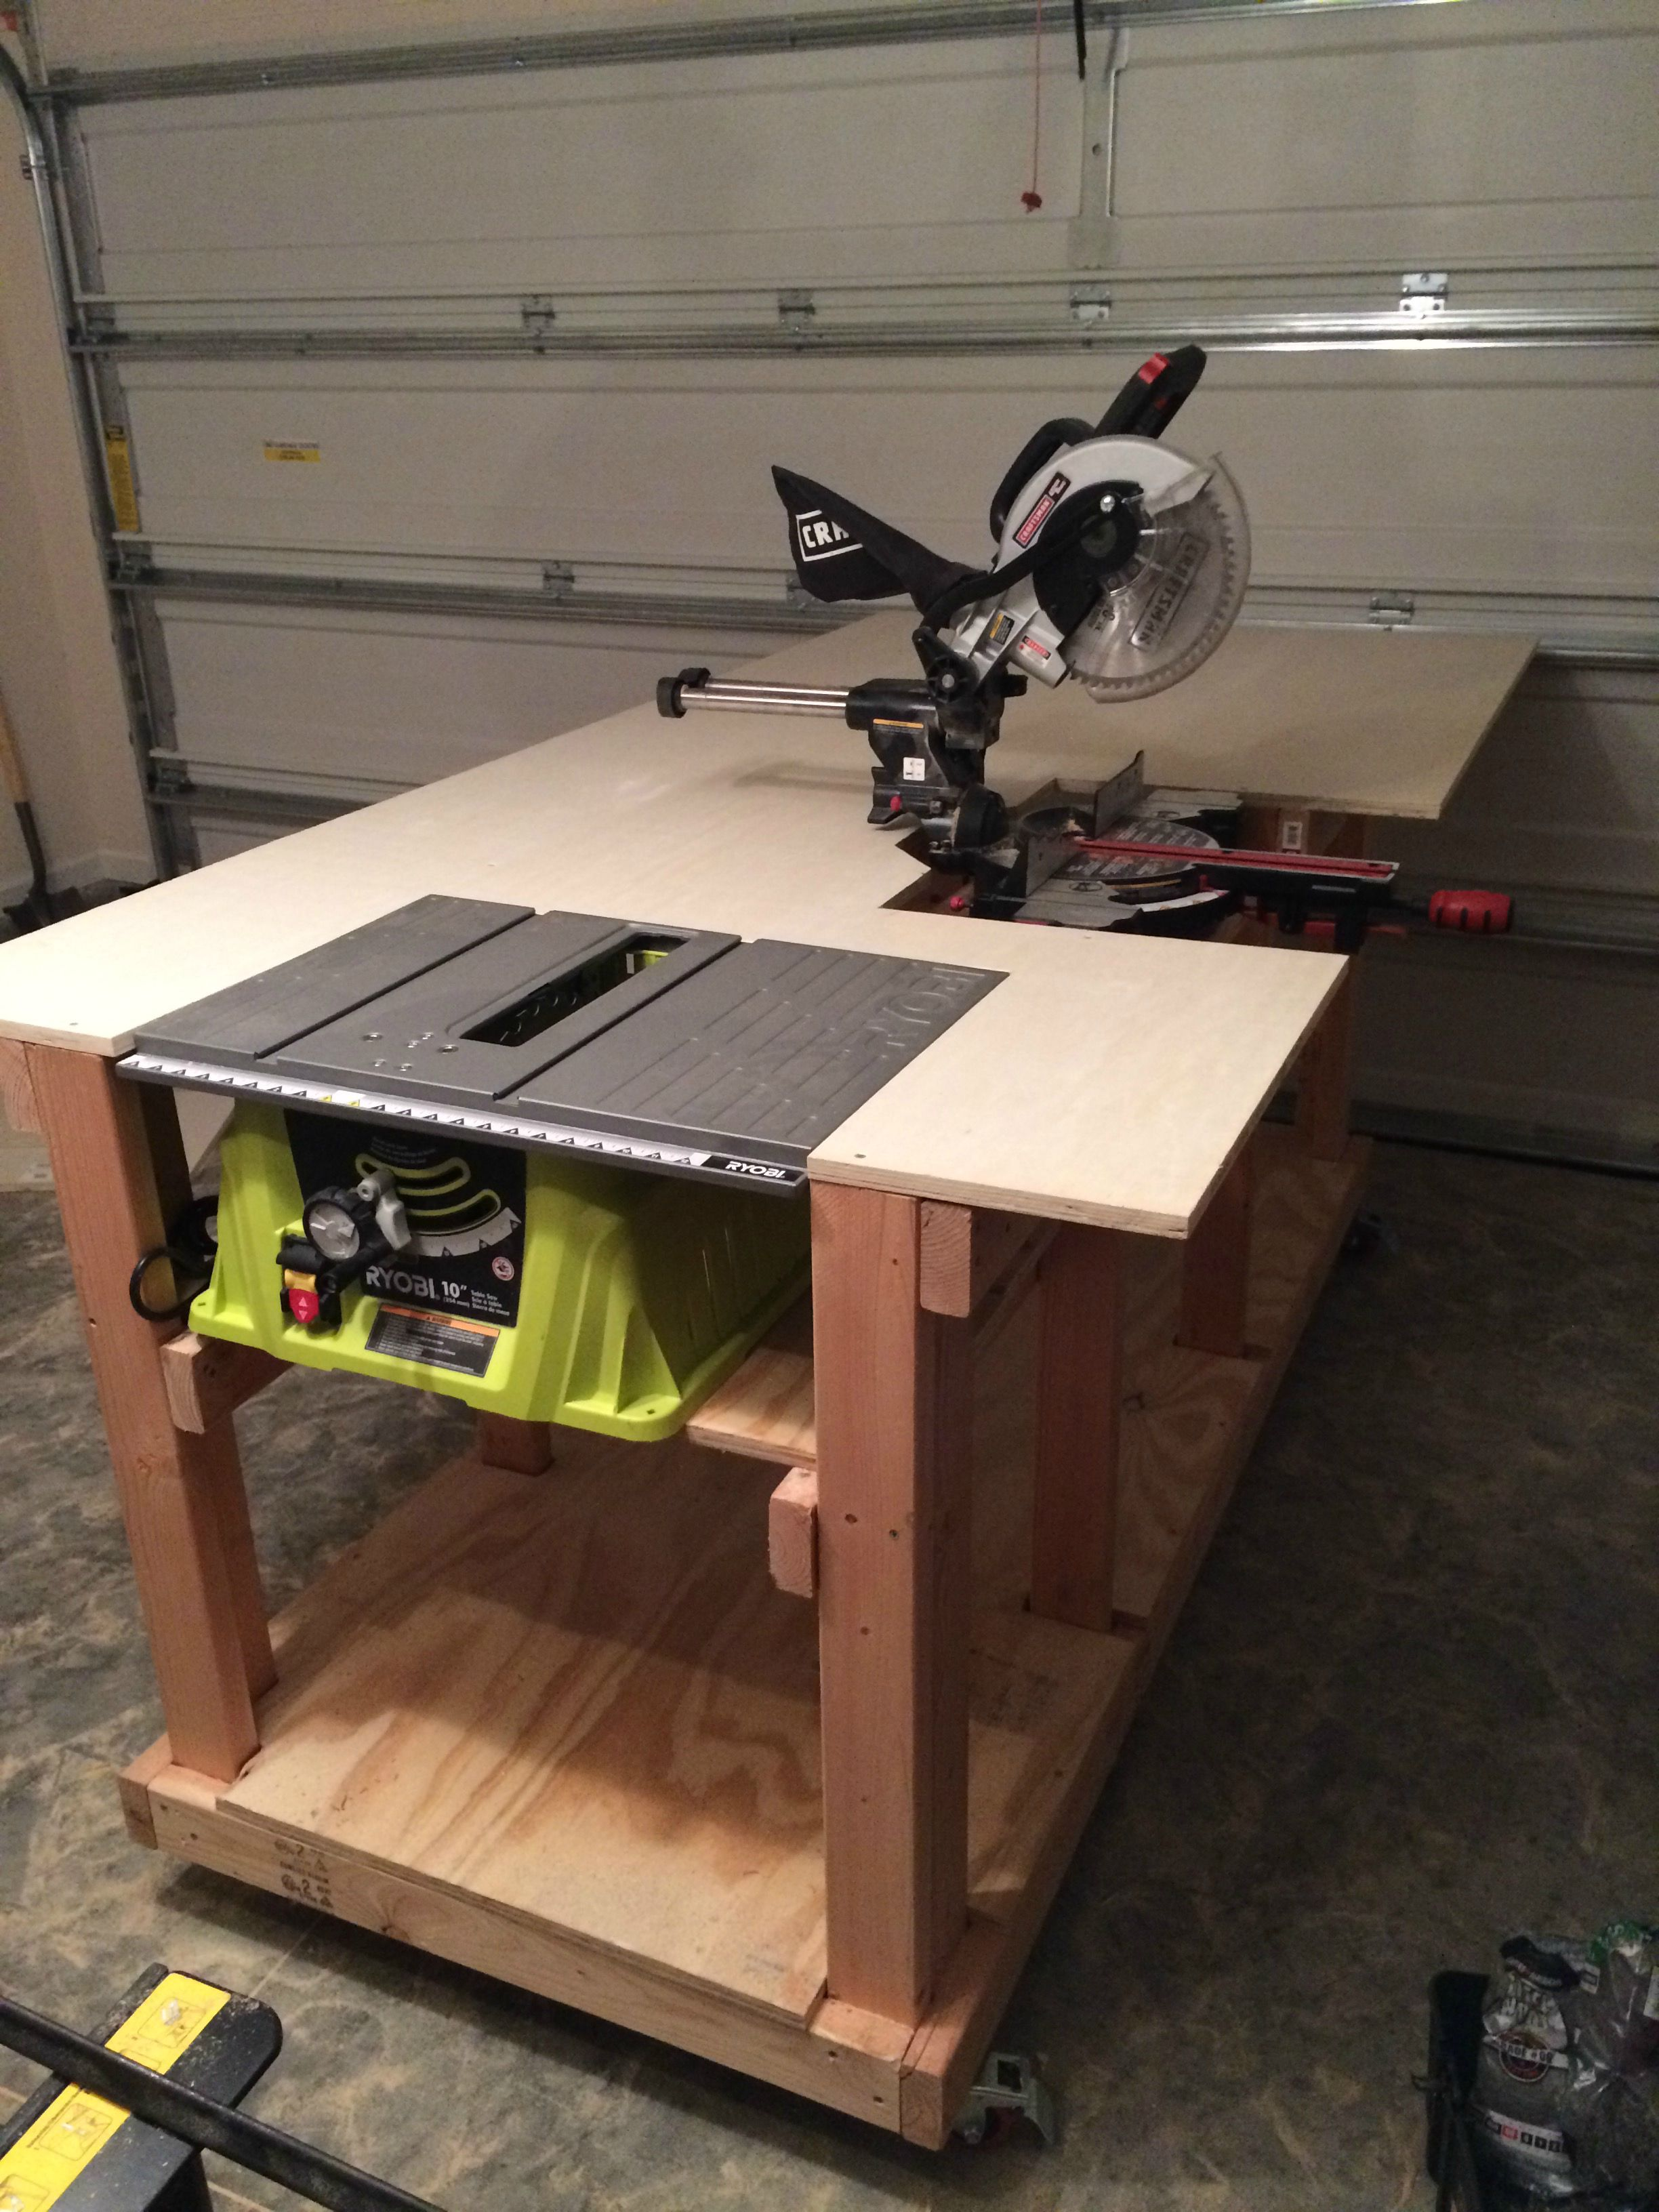 Diy workbench diy workbench woodworking and wood working for Working table design ideas